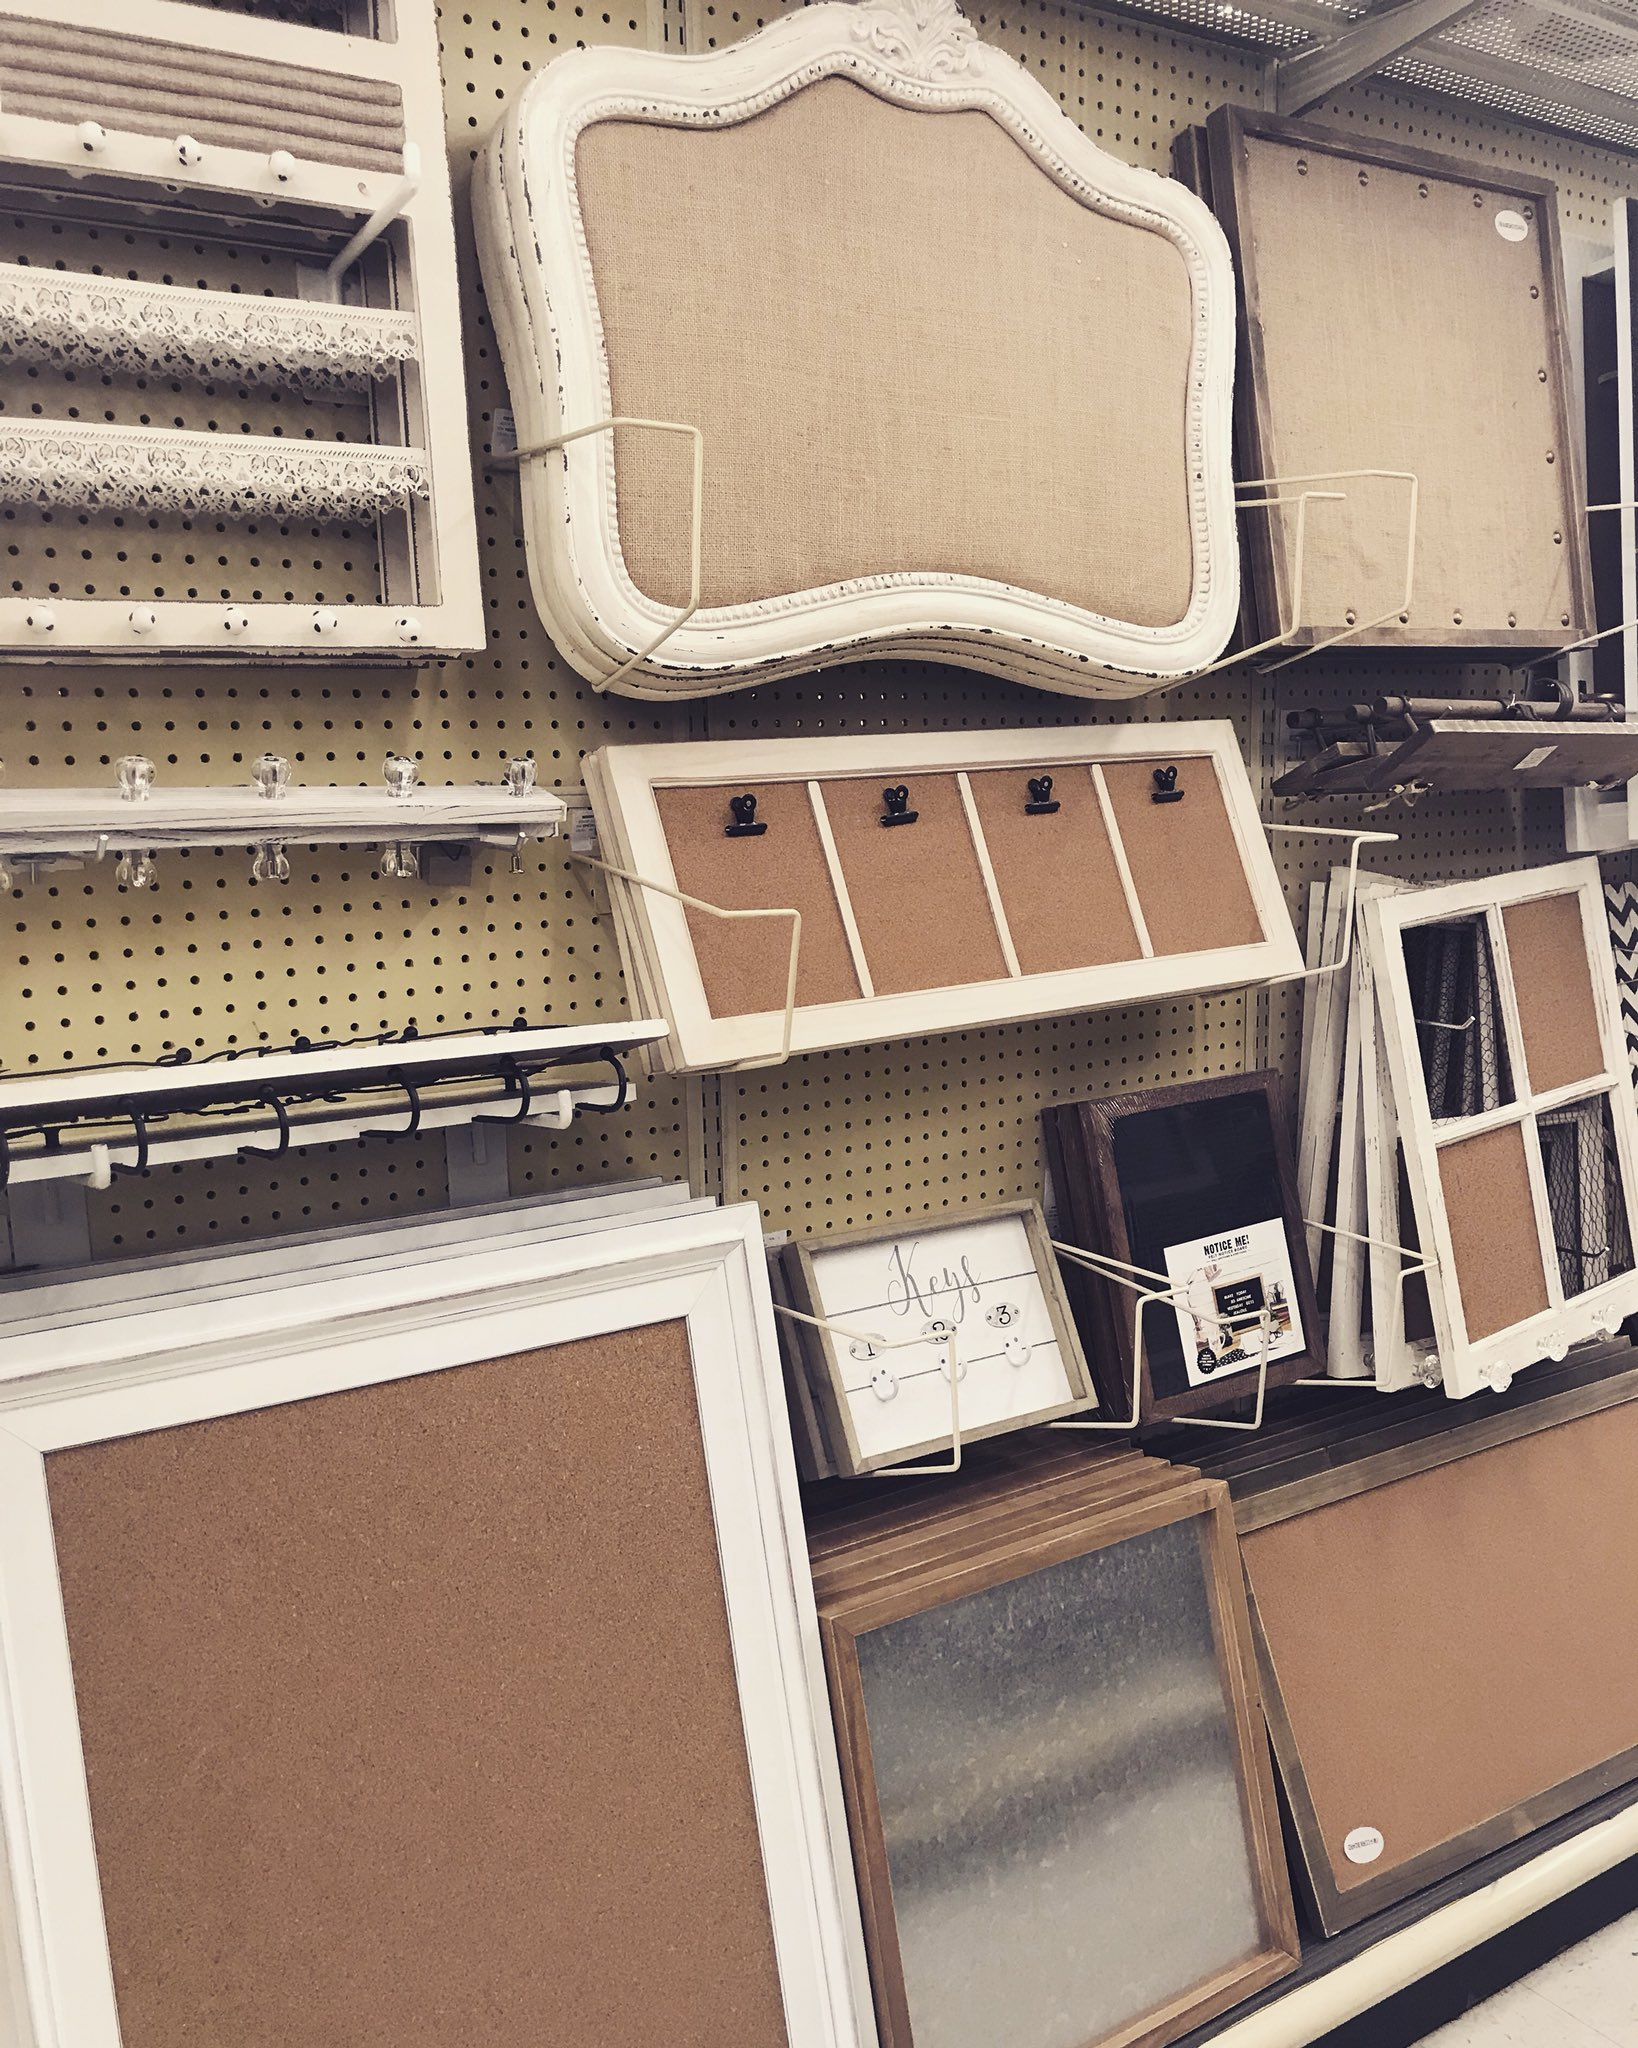 Hobby Lobby Life On Twitter Let S Get Organized Decorative Memo Boards Corkboards Priced 24 99 Up Are 50 Off Hobbylobbylife Hobbylobby Hobbylobbyfarmhouse Hobbylobbyfinds Hobbylobbystyle Memo Corkboard Https T Co Guhntc9jj0